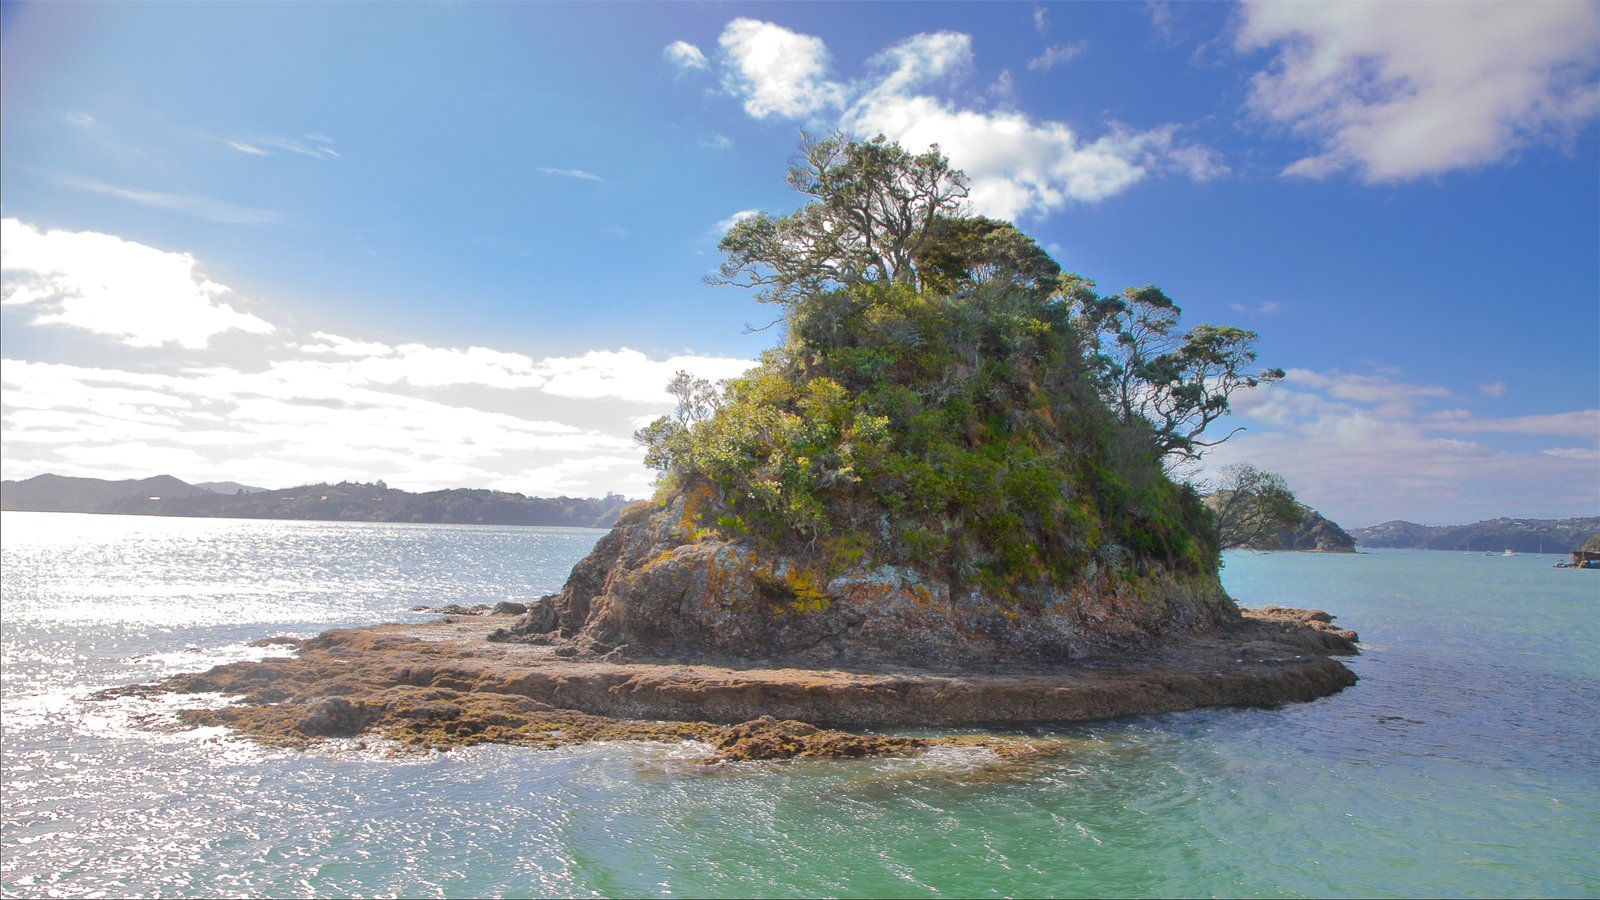 Paihia showing a bay or harbor and rocky coastline